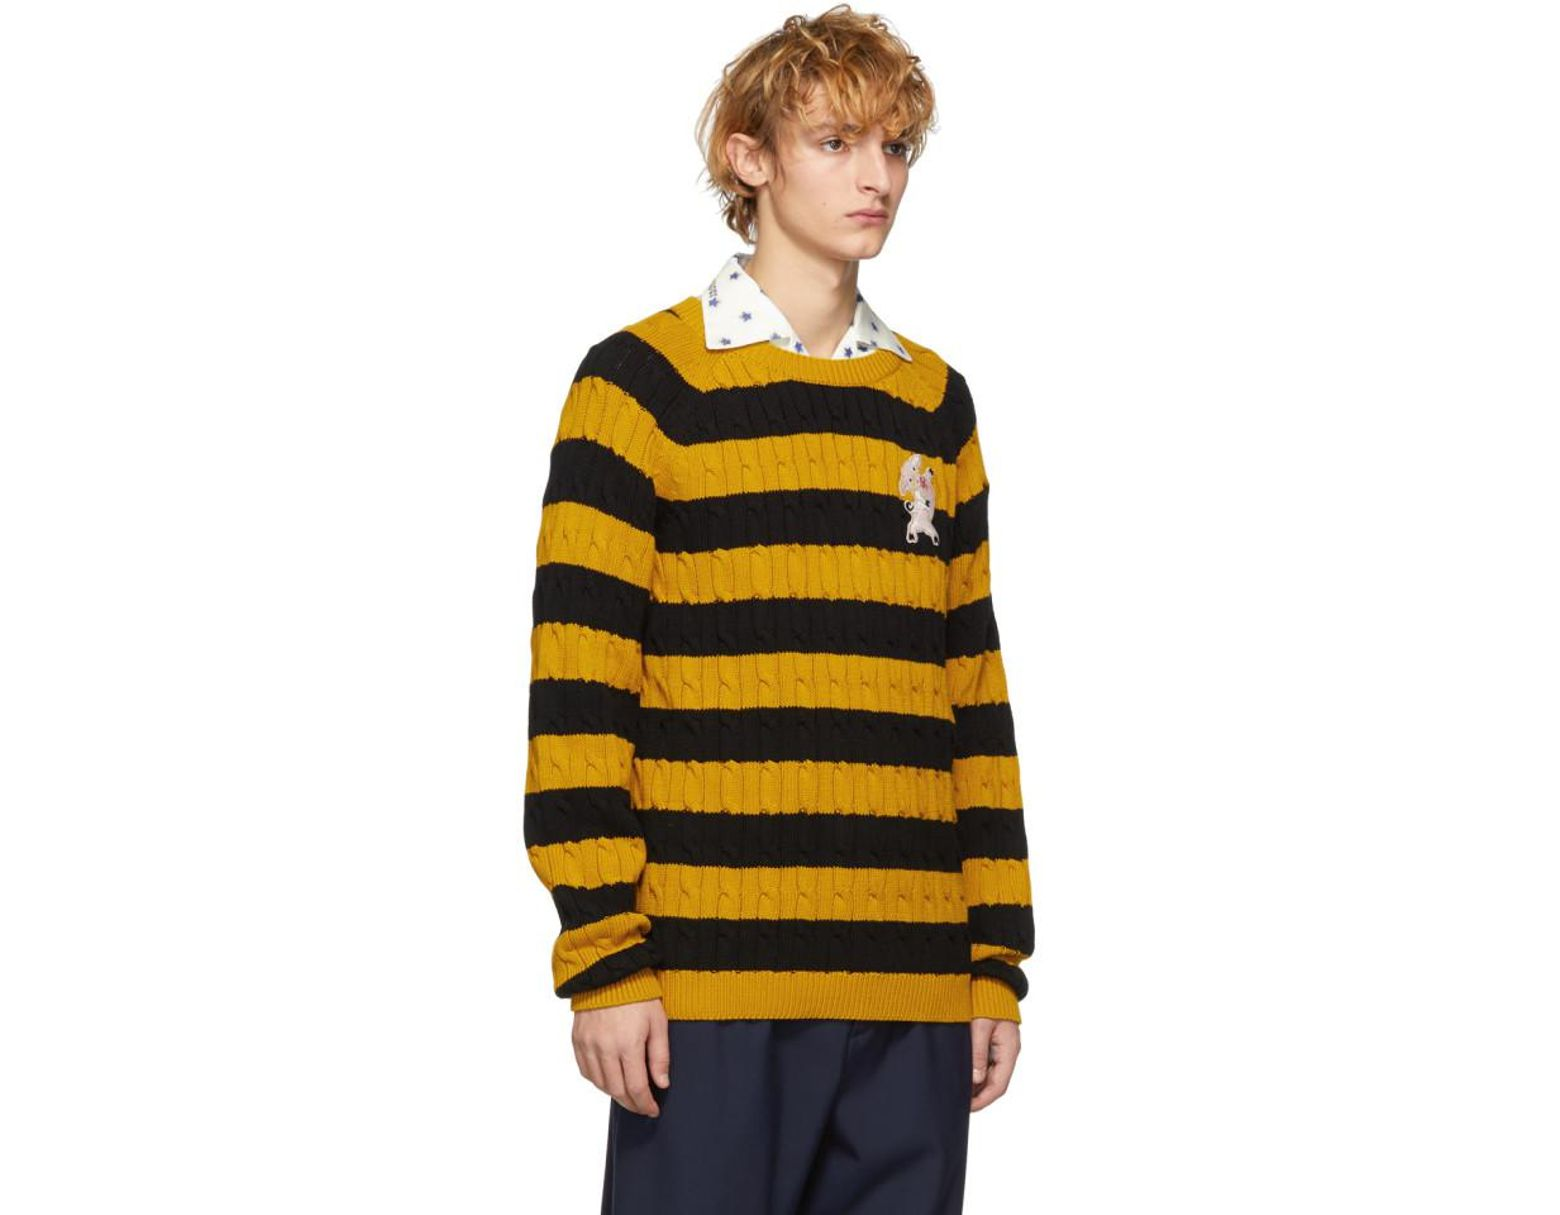 248b30376af Lyst - Gucci Black And Yellow Striped Embroidered Pig Sweater in ...